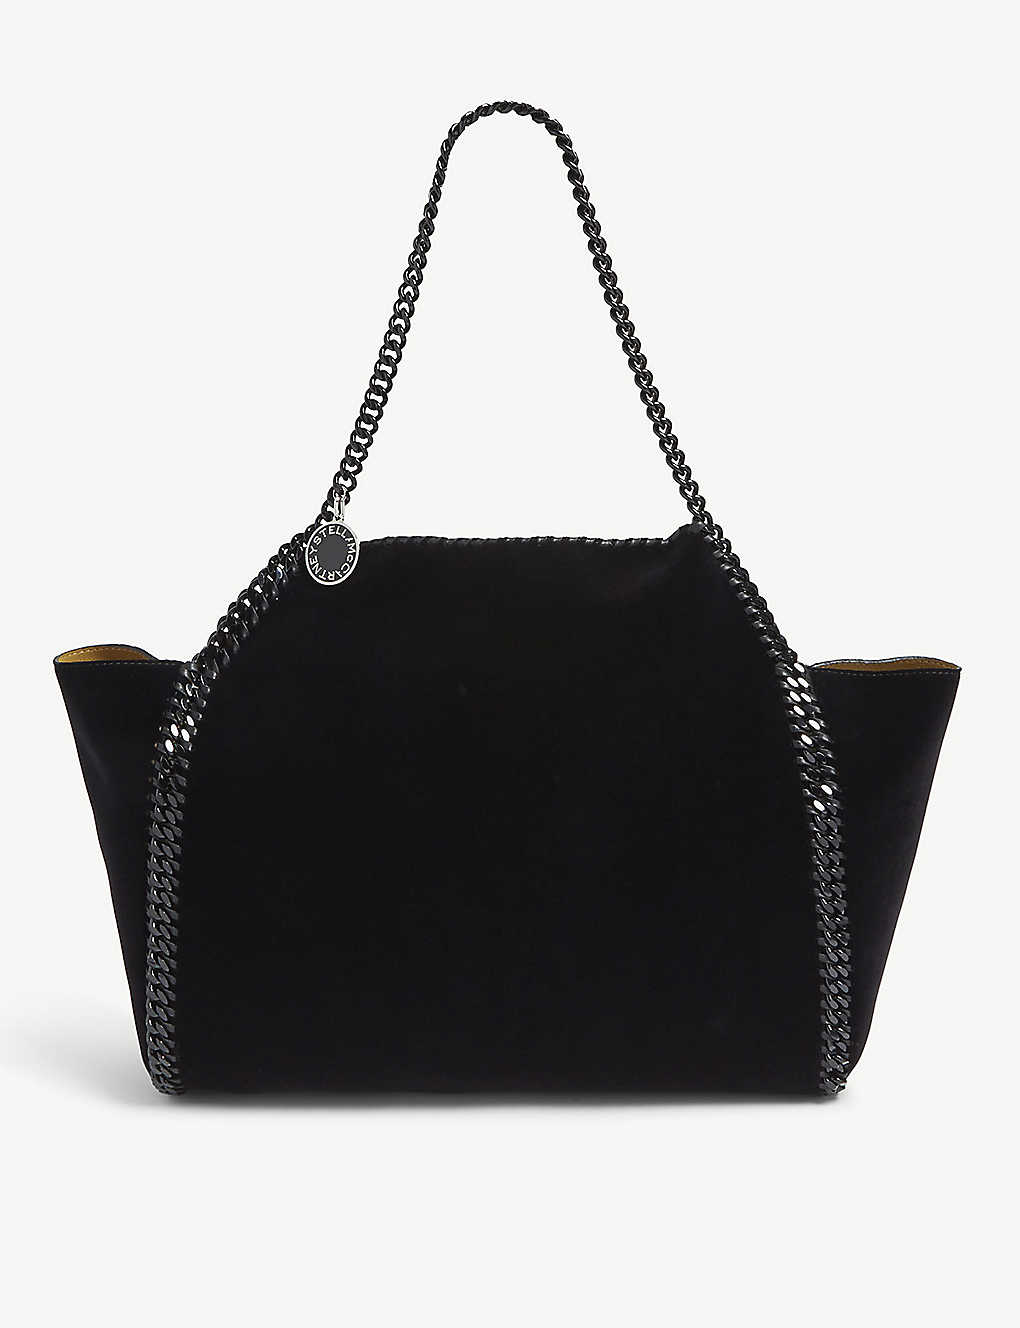 STELLA MCCARTNEY - Falabella reversible tote bag  621ad0b691f60